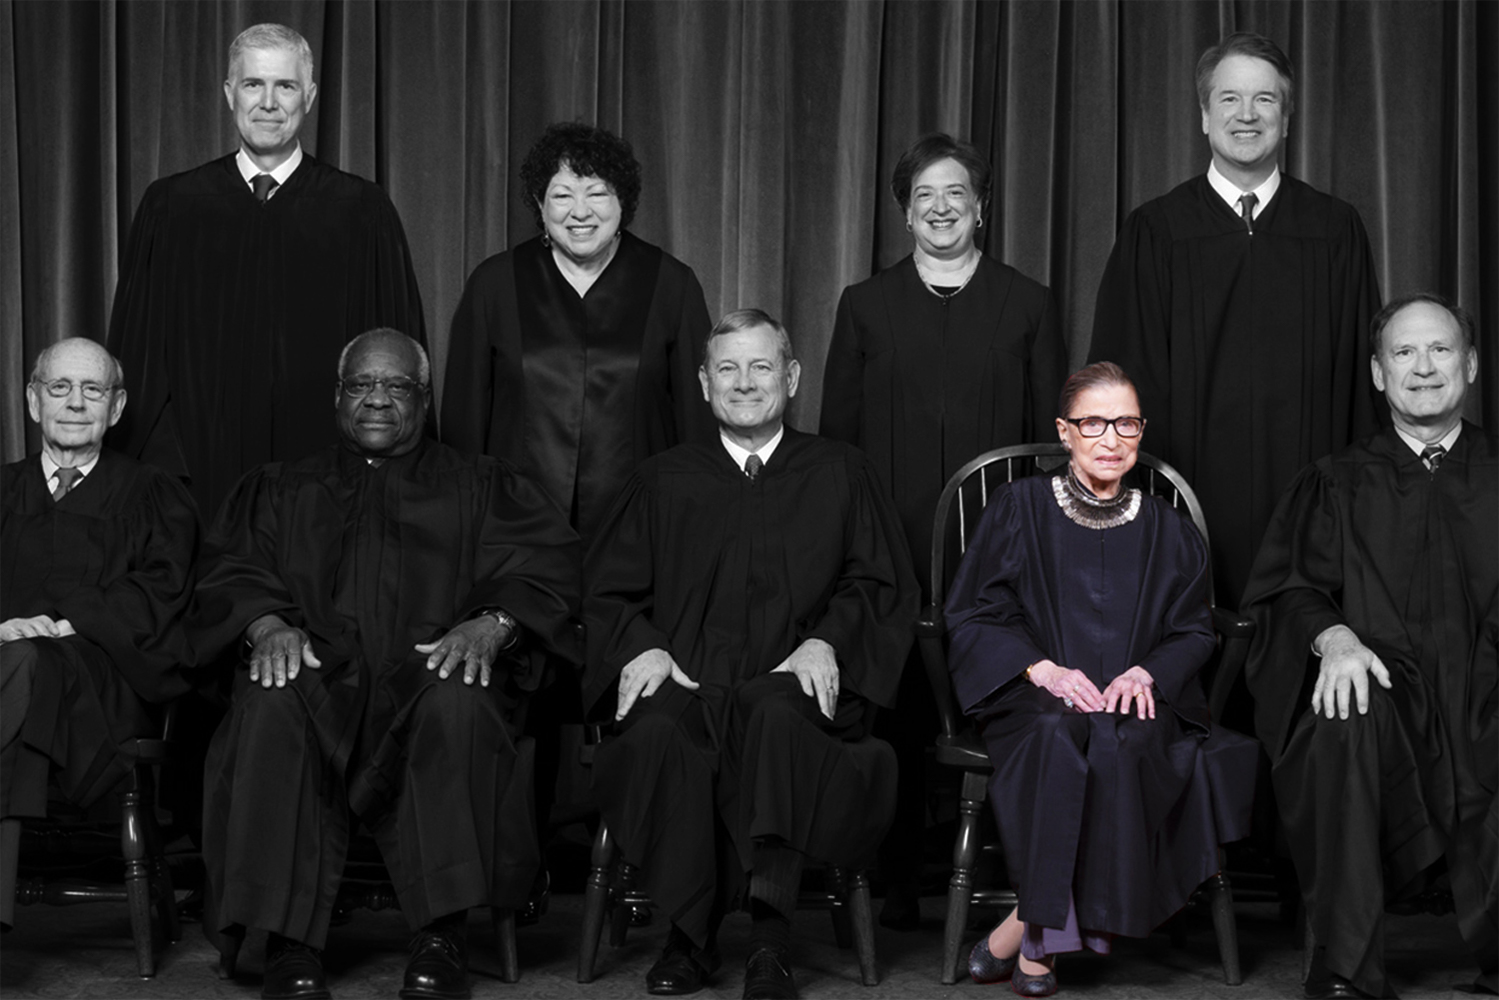 Nov. 30, 2018, The justices of the U.S. Supreme Court are here seen for a formal group portrait to include the new Associate Justice, top row, far right, at the Supreme Court building in Washington. Seated from left: Associate Justice Stephen Breyer, Associate Justice Clarence Thomas, Chief Justice of the United States John G. Roberts, Associate Justice Ruth Bader Ginsburg and Associate Justice Samuel Alito Jr. Standing behind from left: Associate Justice Neil Gorsuch, Associate Justice Sonia Sotomayor, Associate Justice Elena Kagan and Associate Justice Brett M. Kavanaugh.